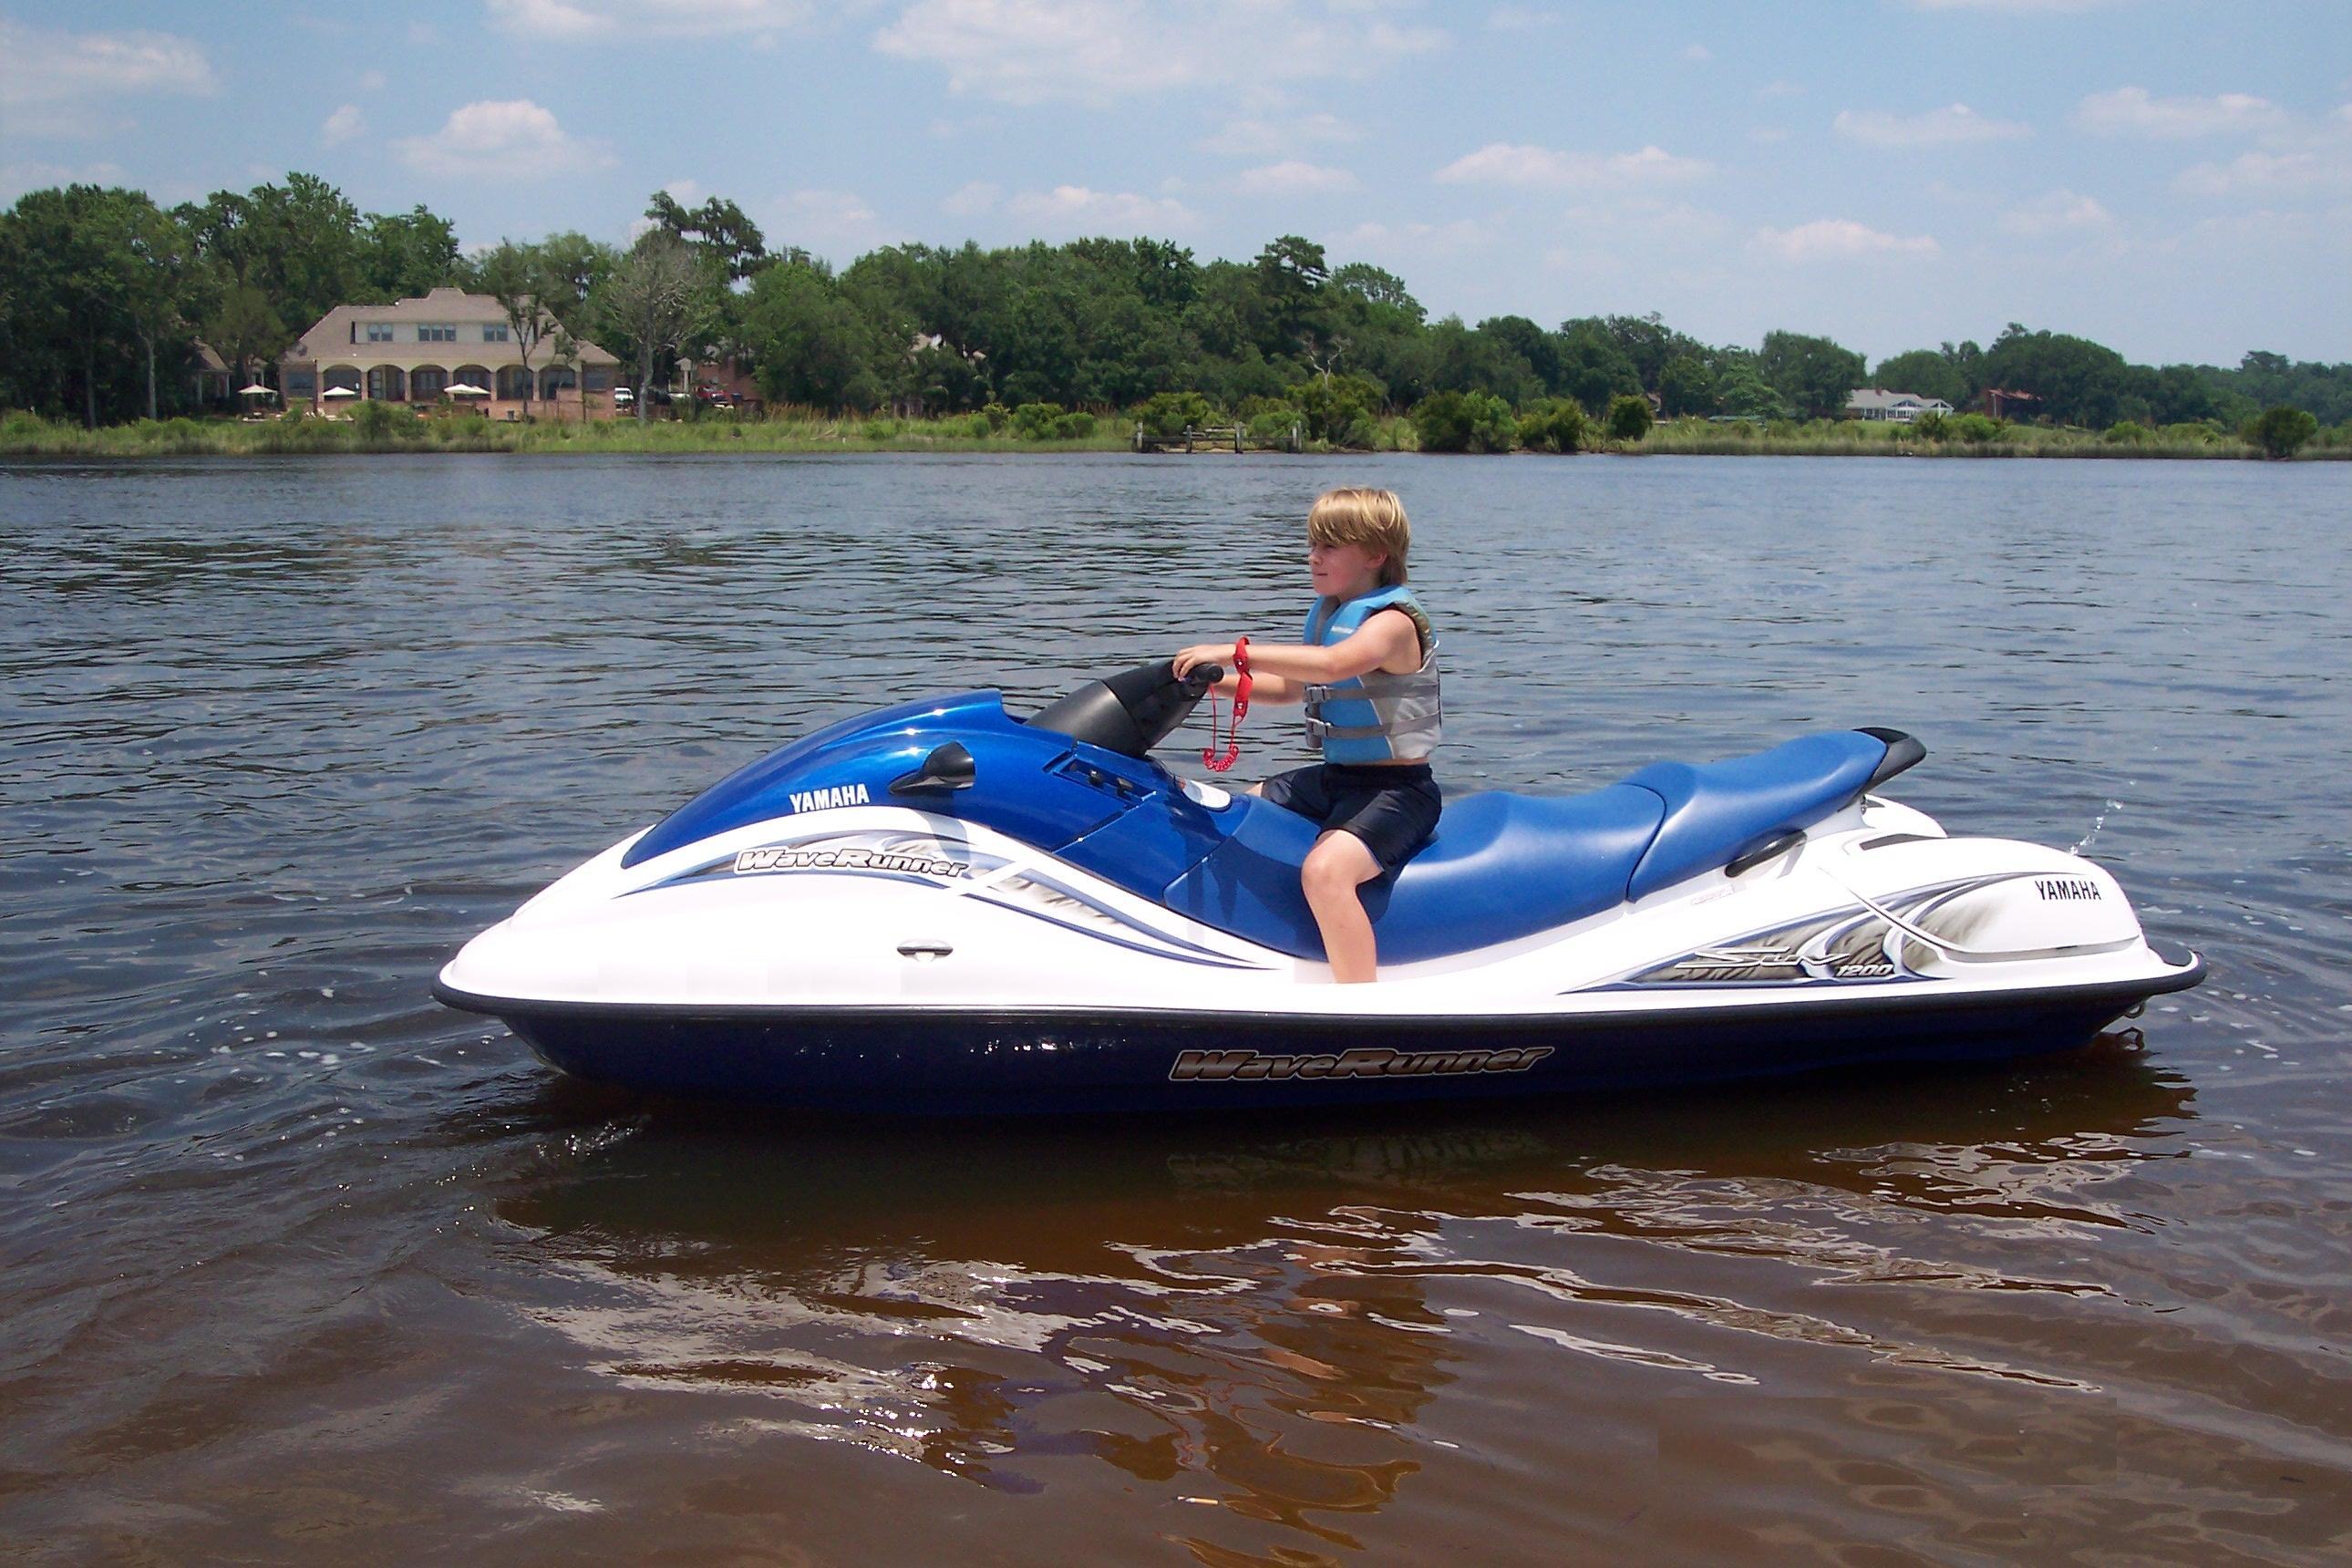 Yamaha Jet Ski Manual